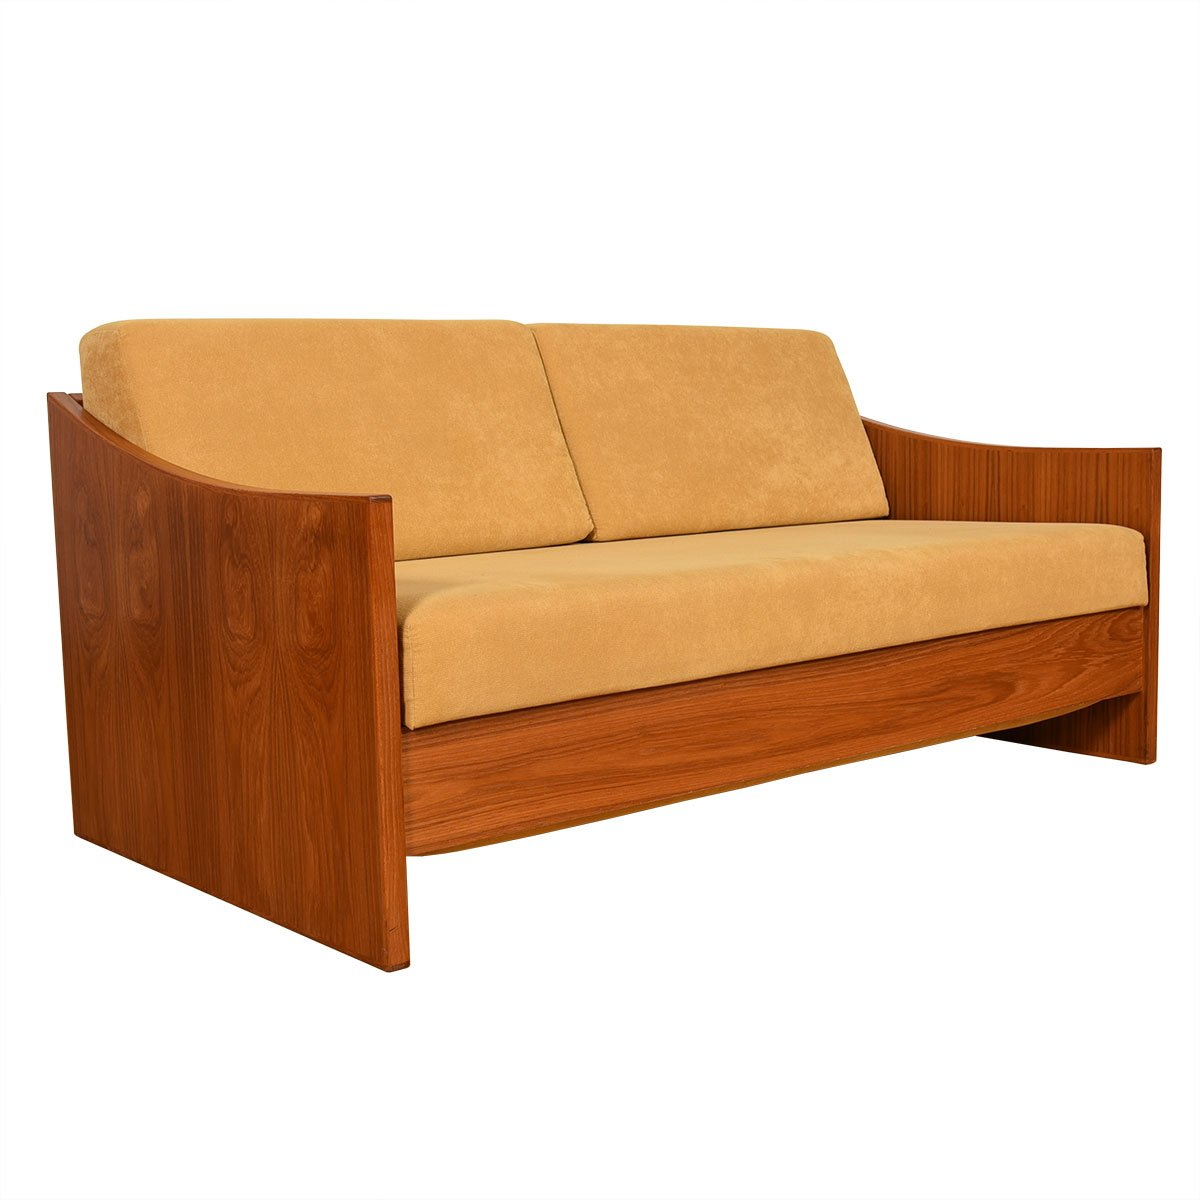 Danish Modern Teak Expanding Daybed.